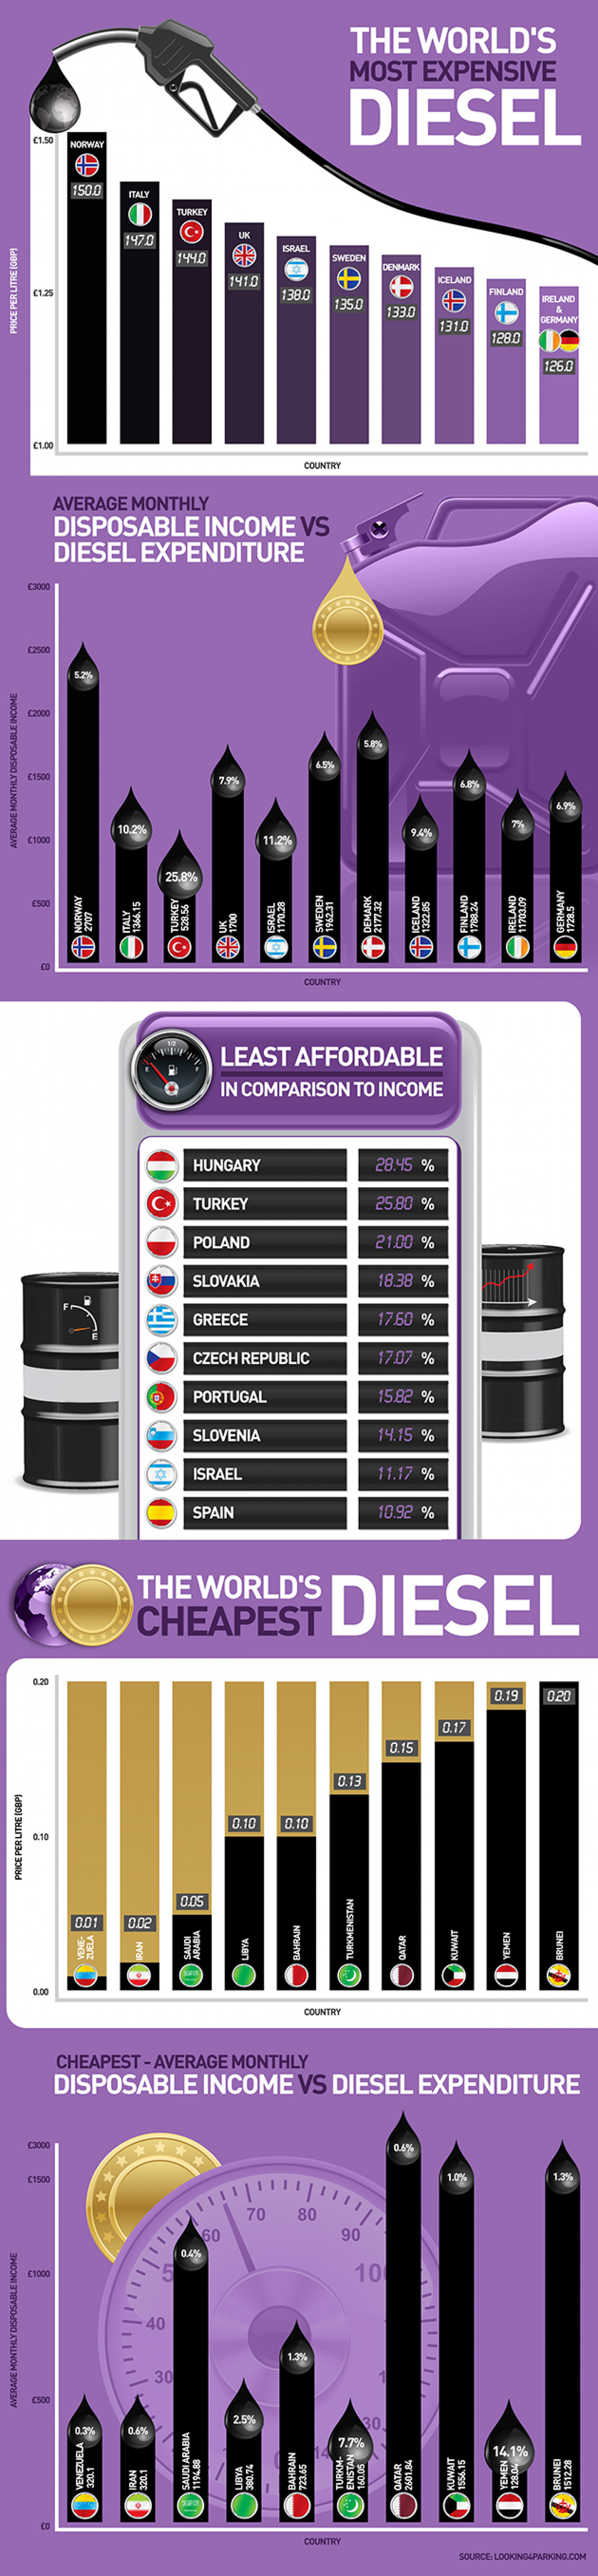 The World's Cheapest And Most Expensive Diesel Infographic